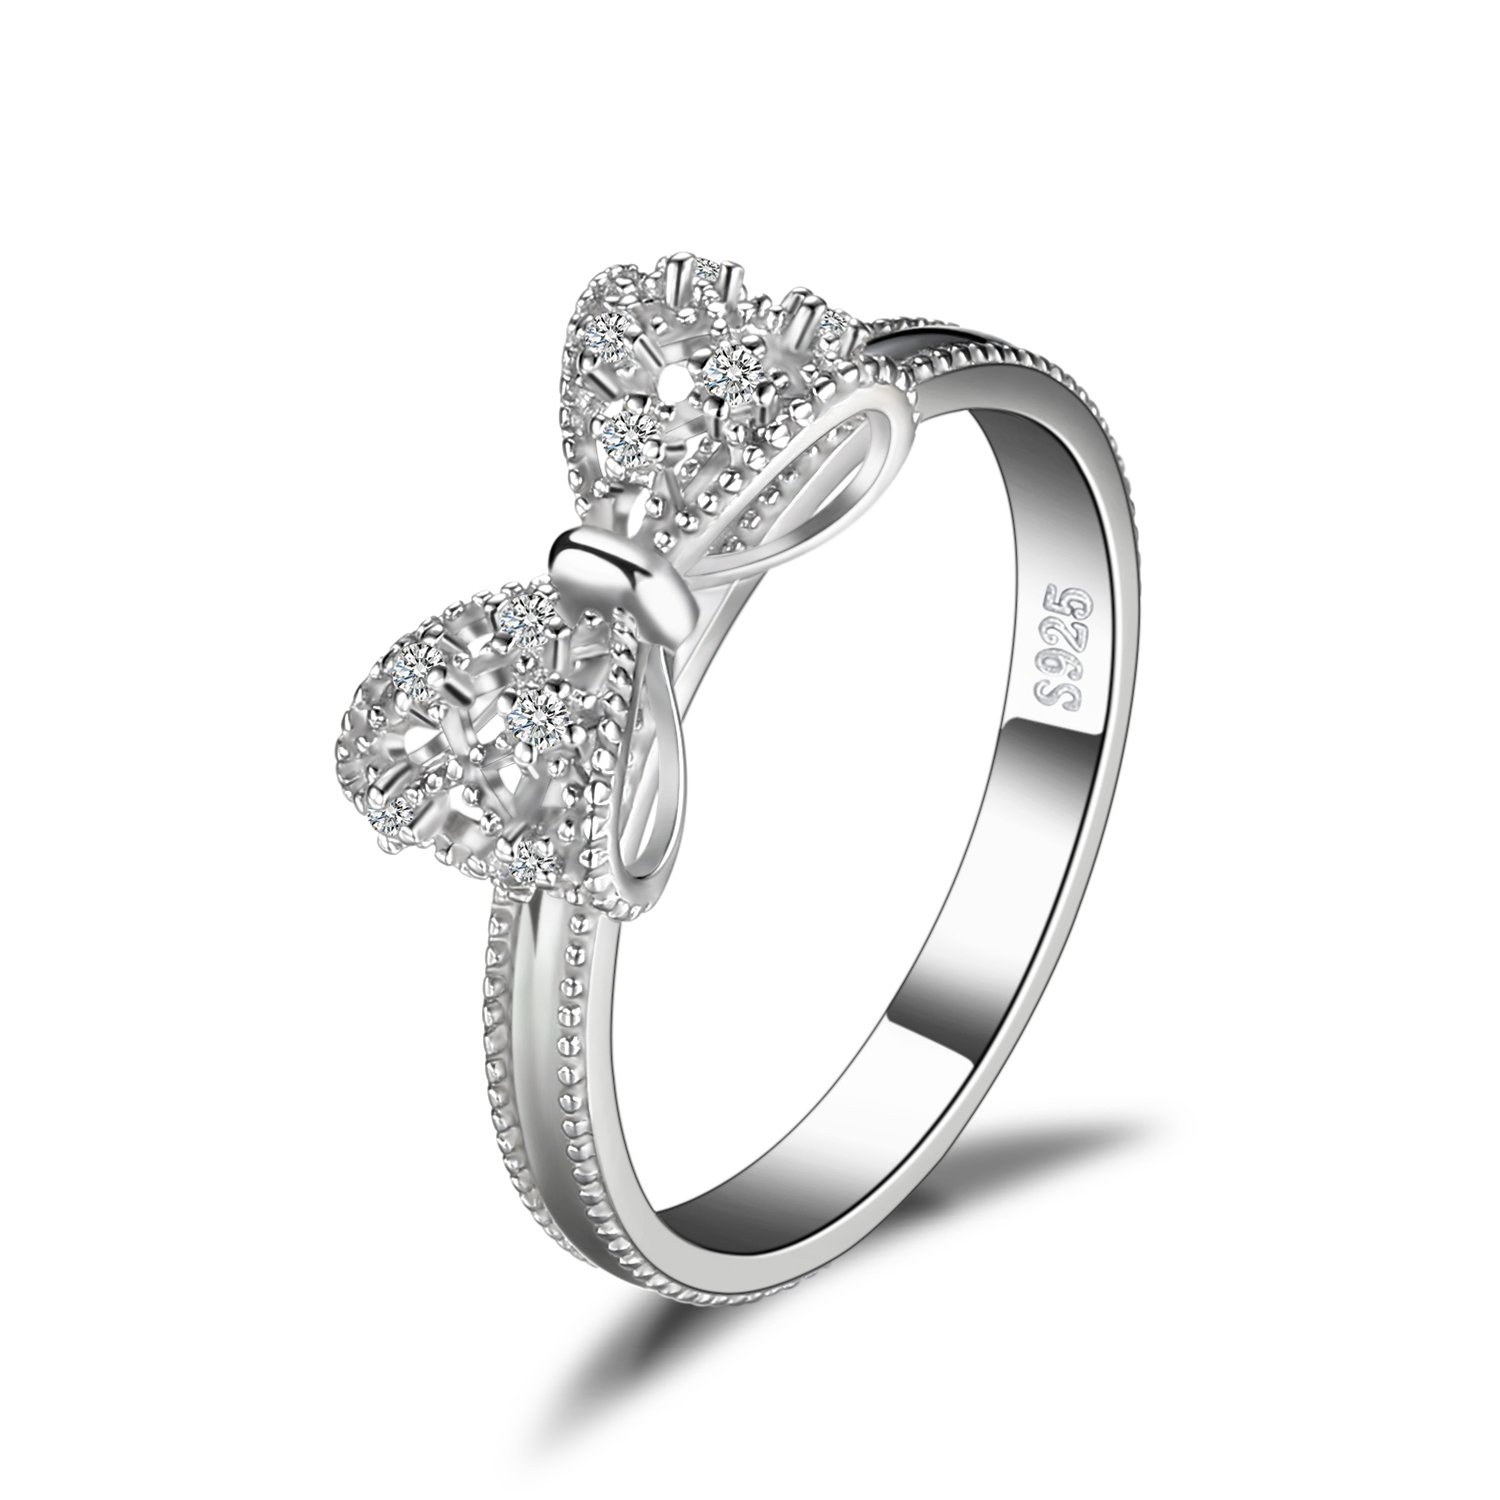 JewelryPalace Cubic Zirconia Anniversary Wedding Ring 925 Sterling Silver Size 6